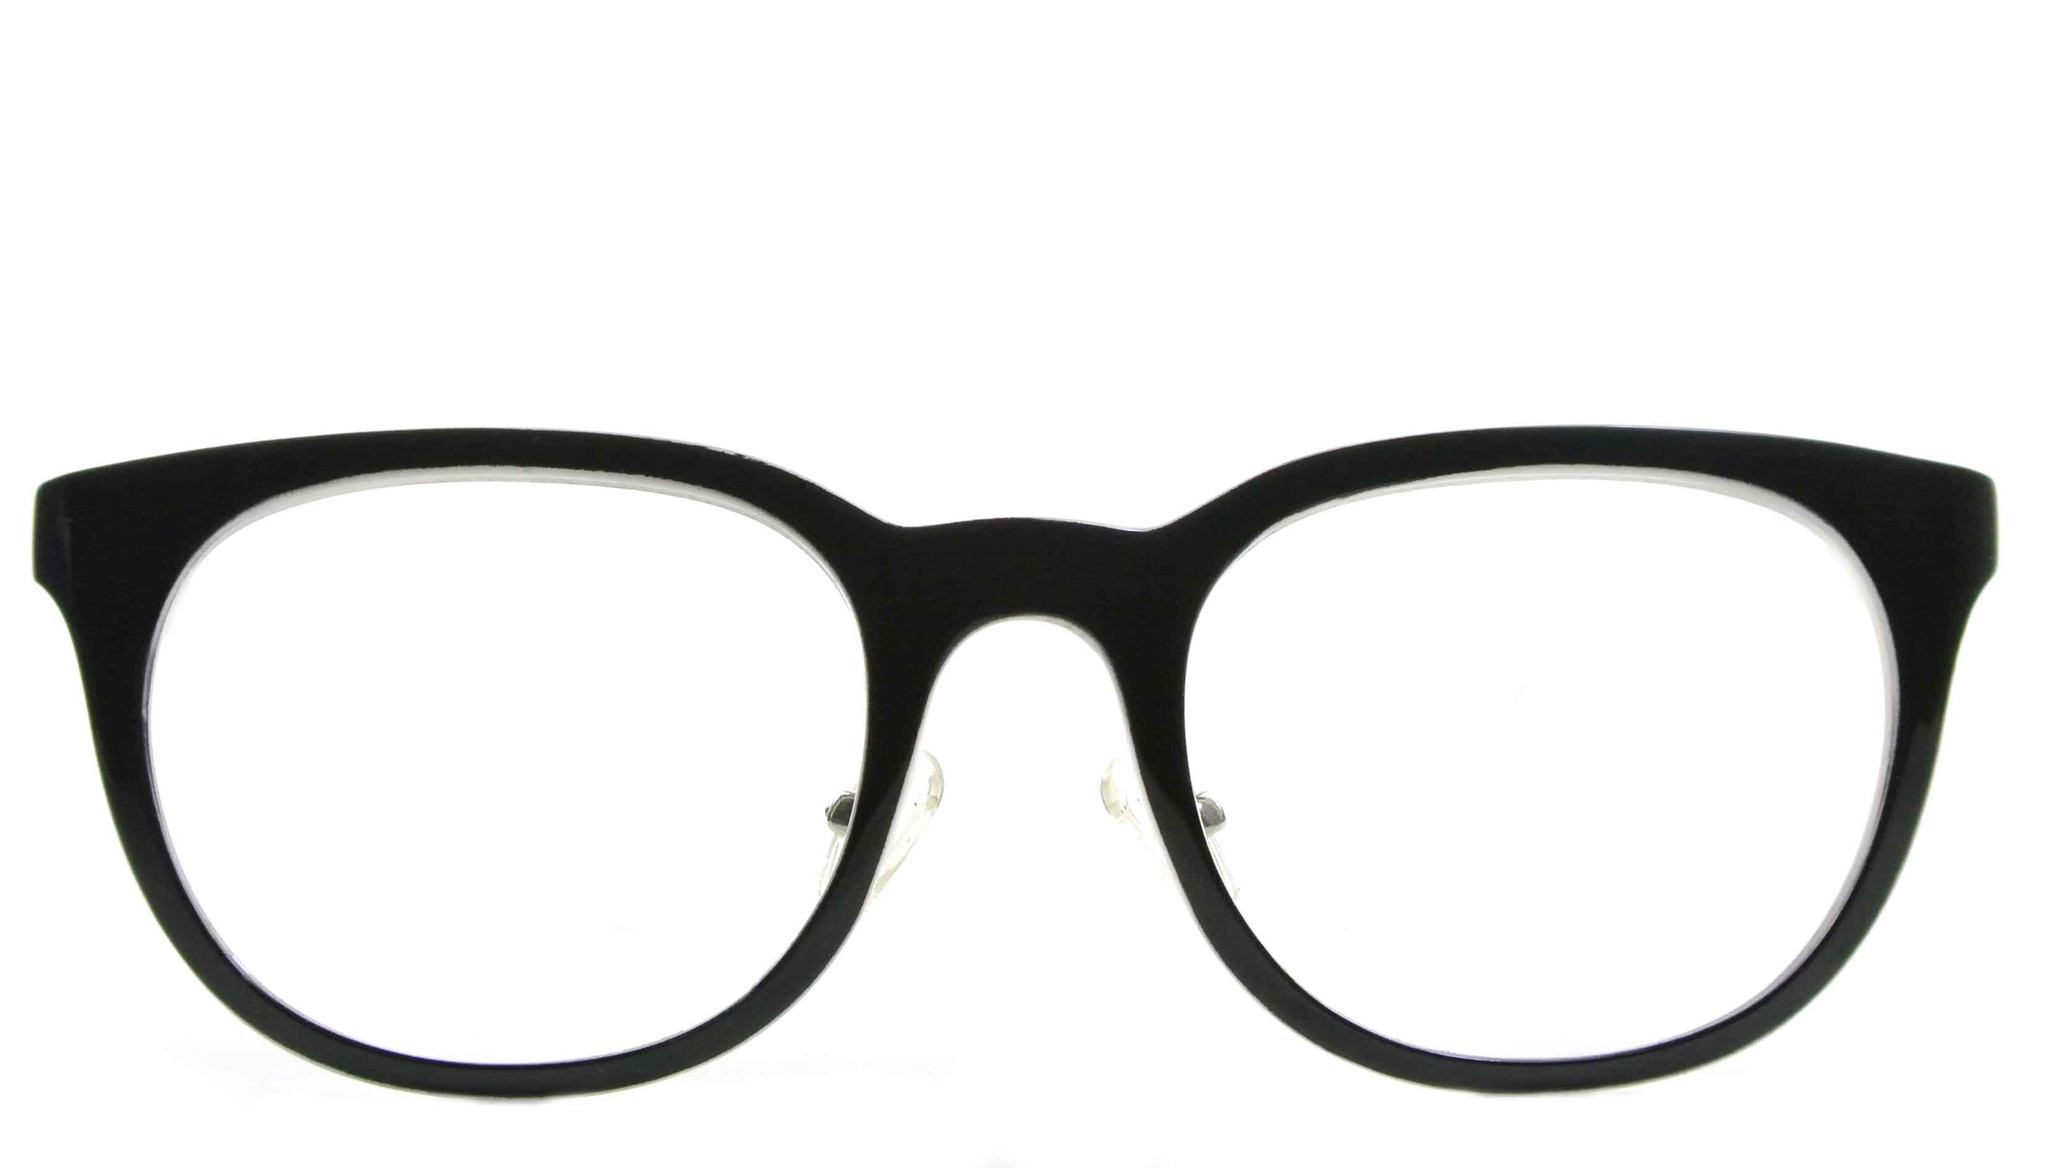 Glasses Square Frame Png image #47162